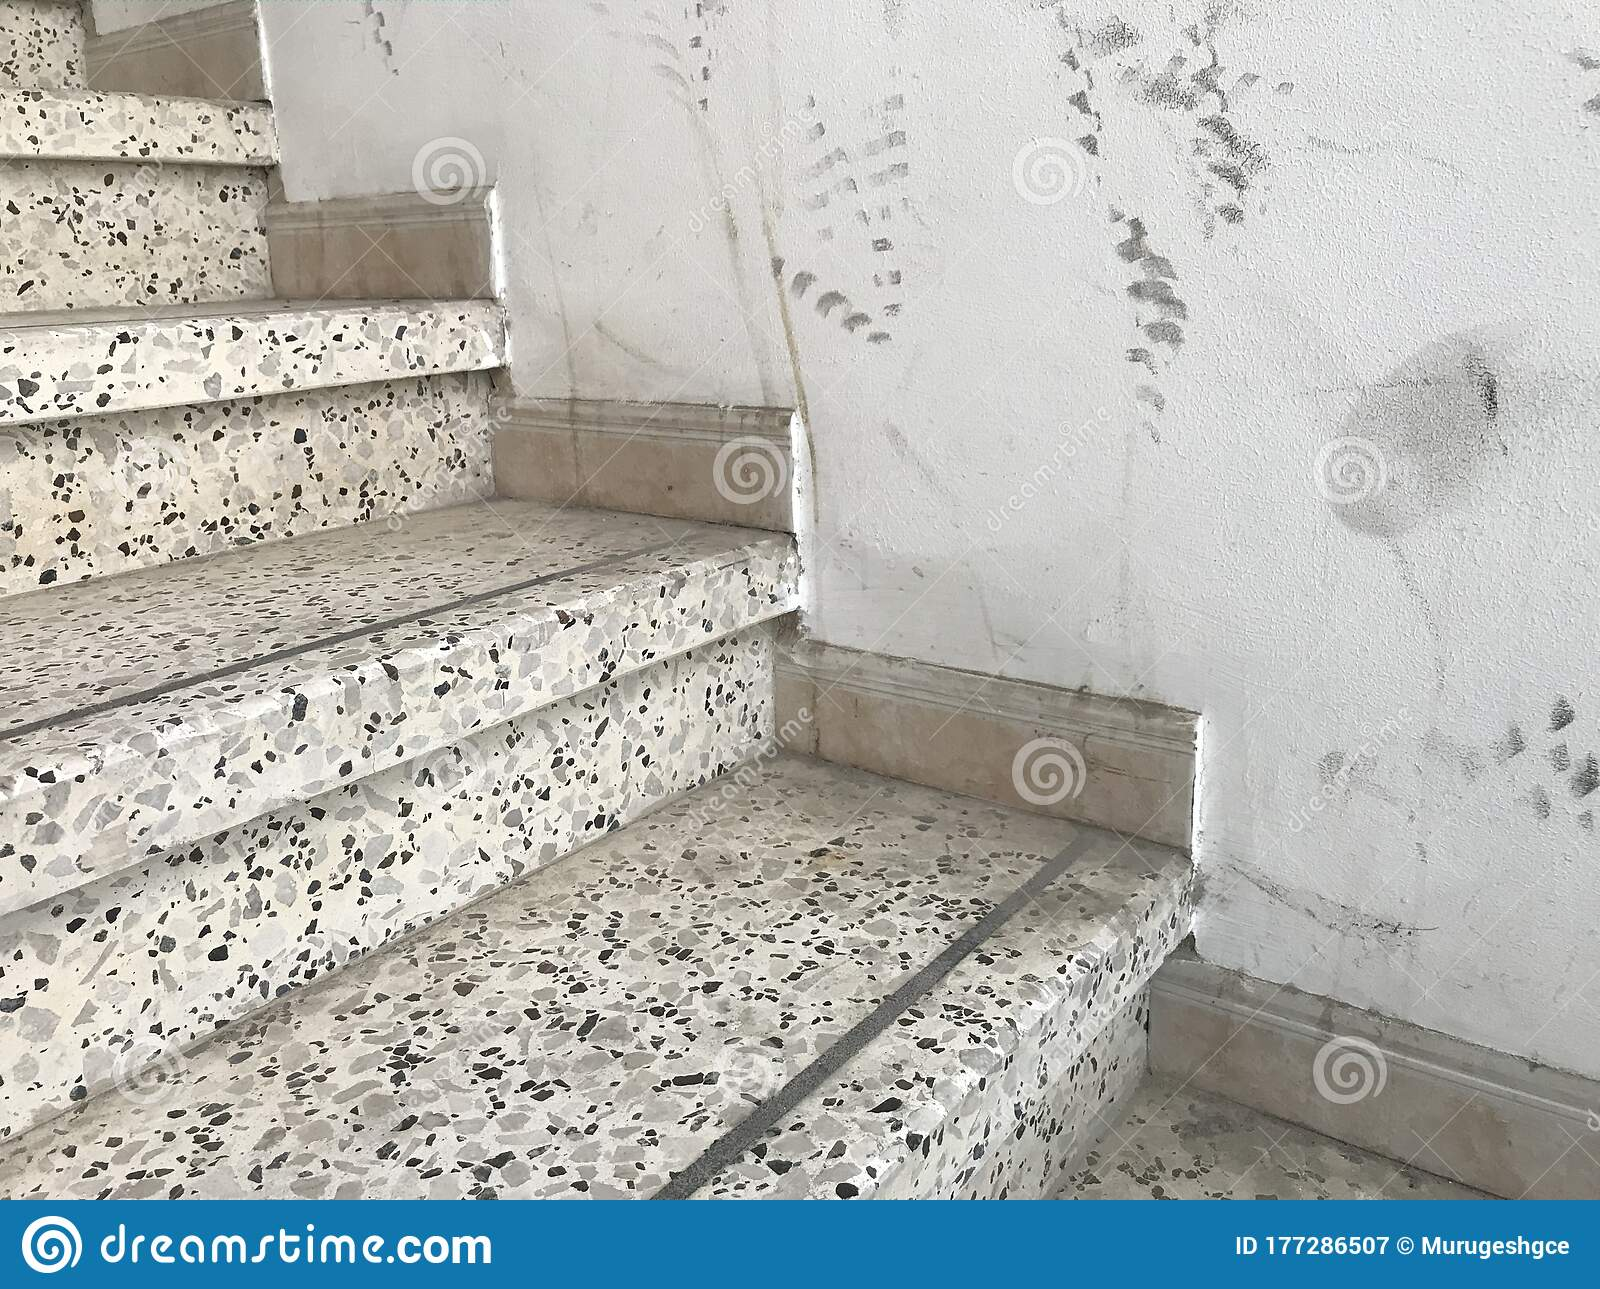 Non Continuous 100 Mm High Granite Tile Skirting Design For An Staircase Of An High Rise Residential Building Architecture Works Stock Image Image Of Finishes Smooth 177286507